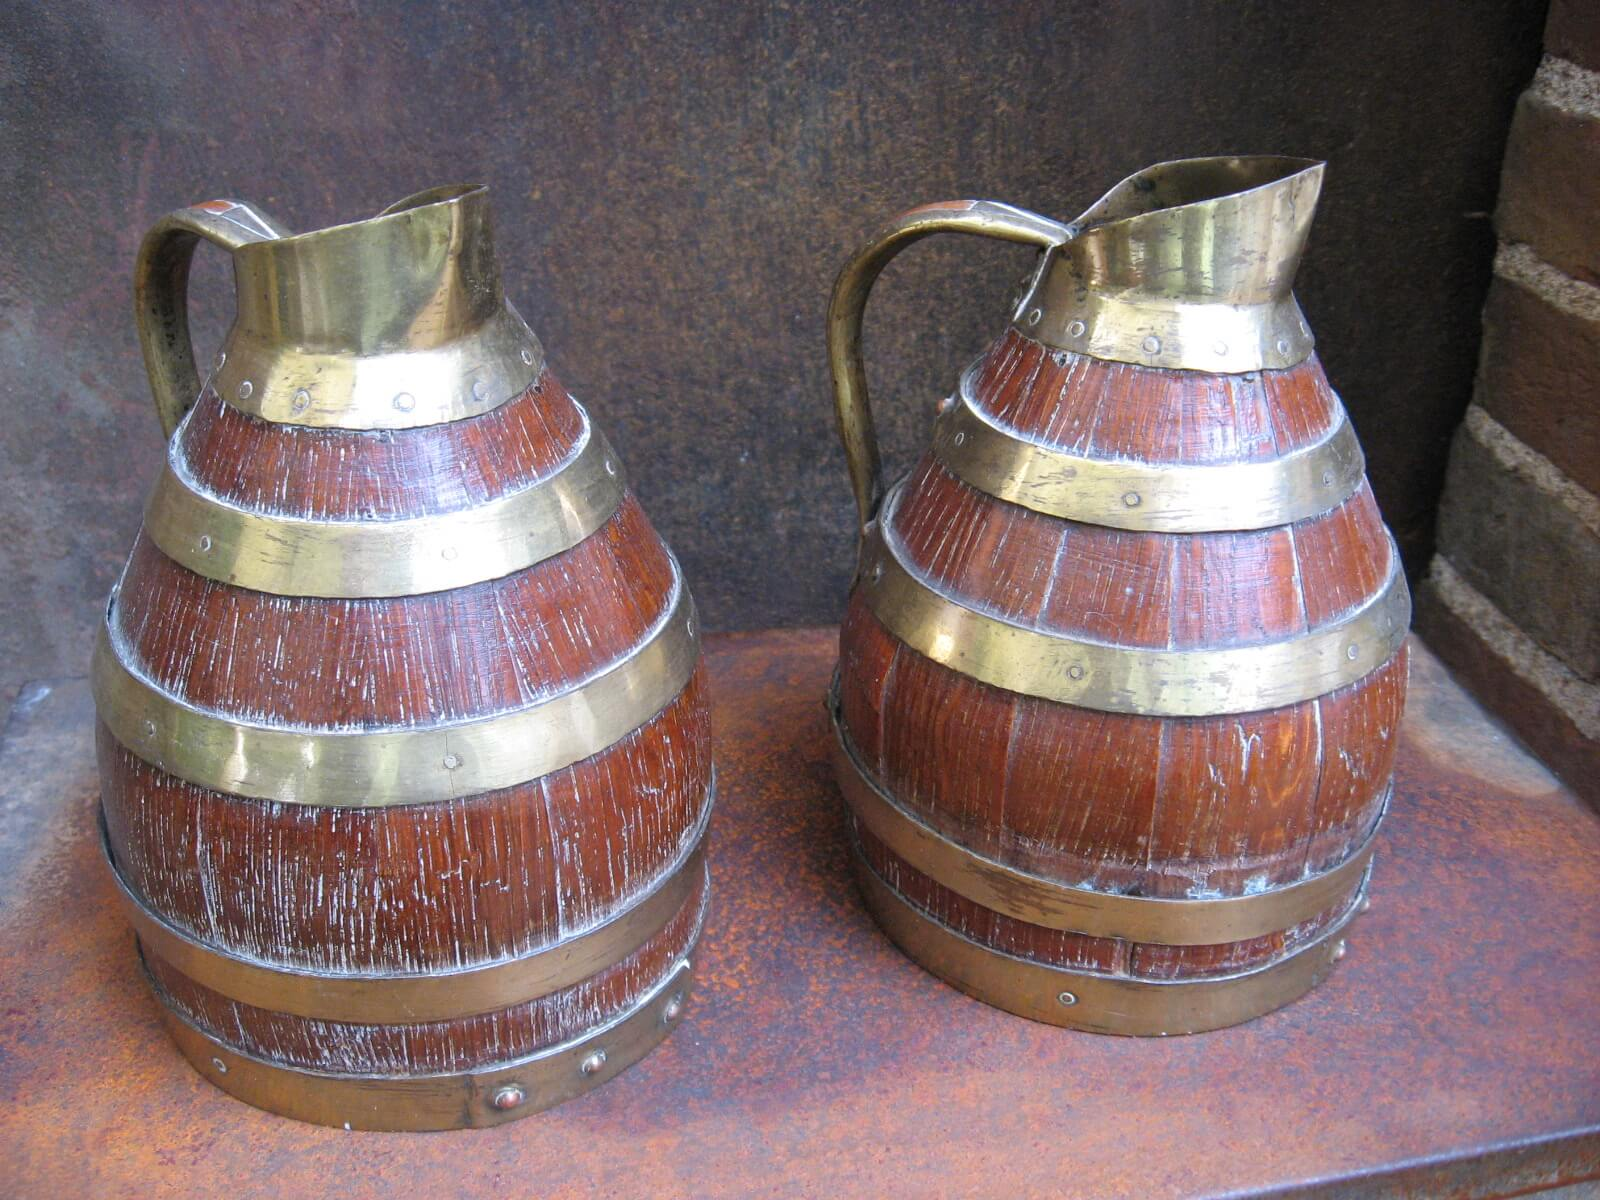 Cooper barrel jugs brass fittings at PumpjackPiddlewick